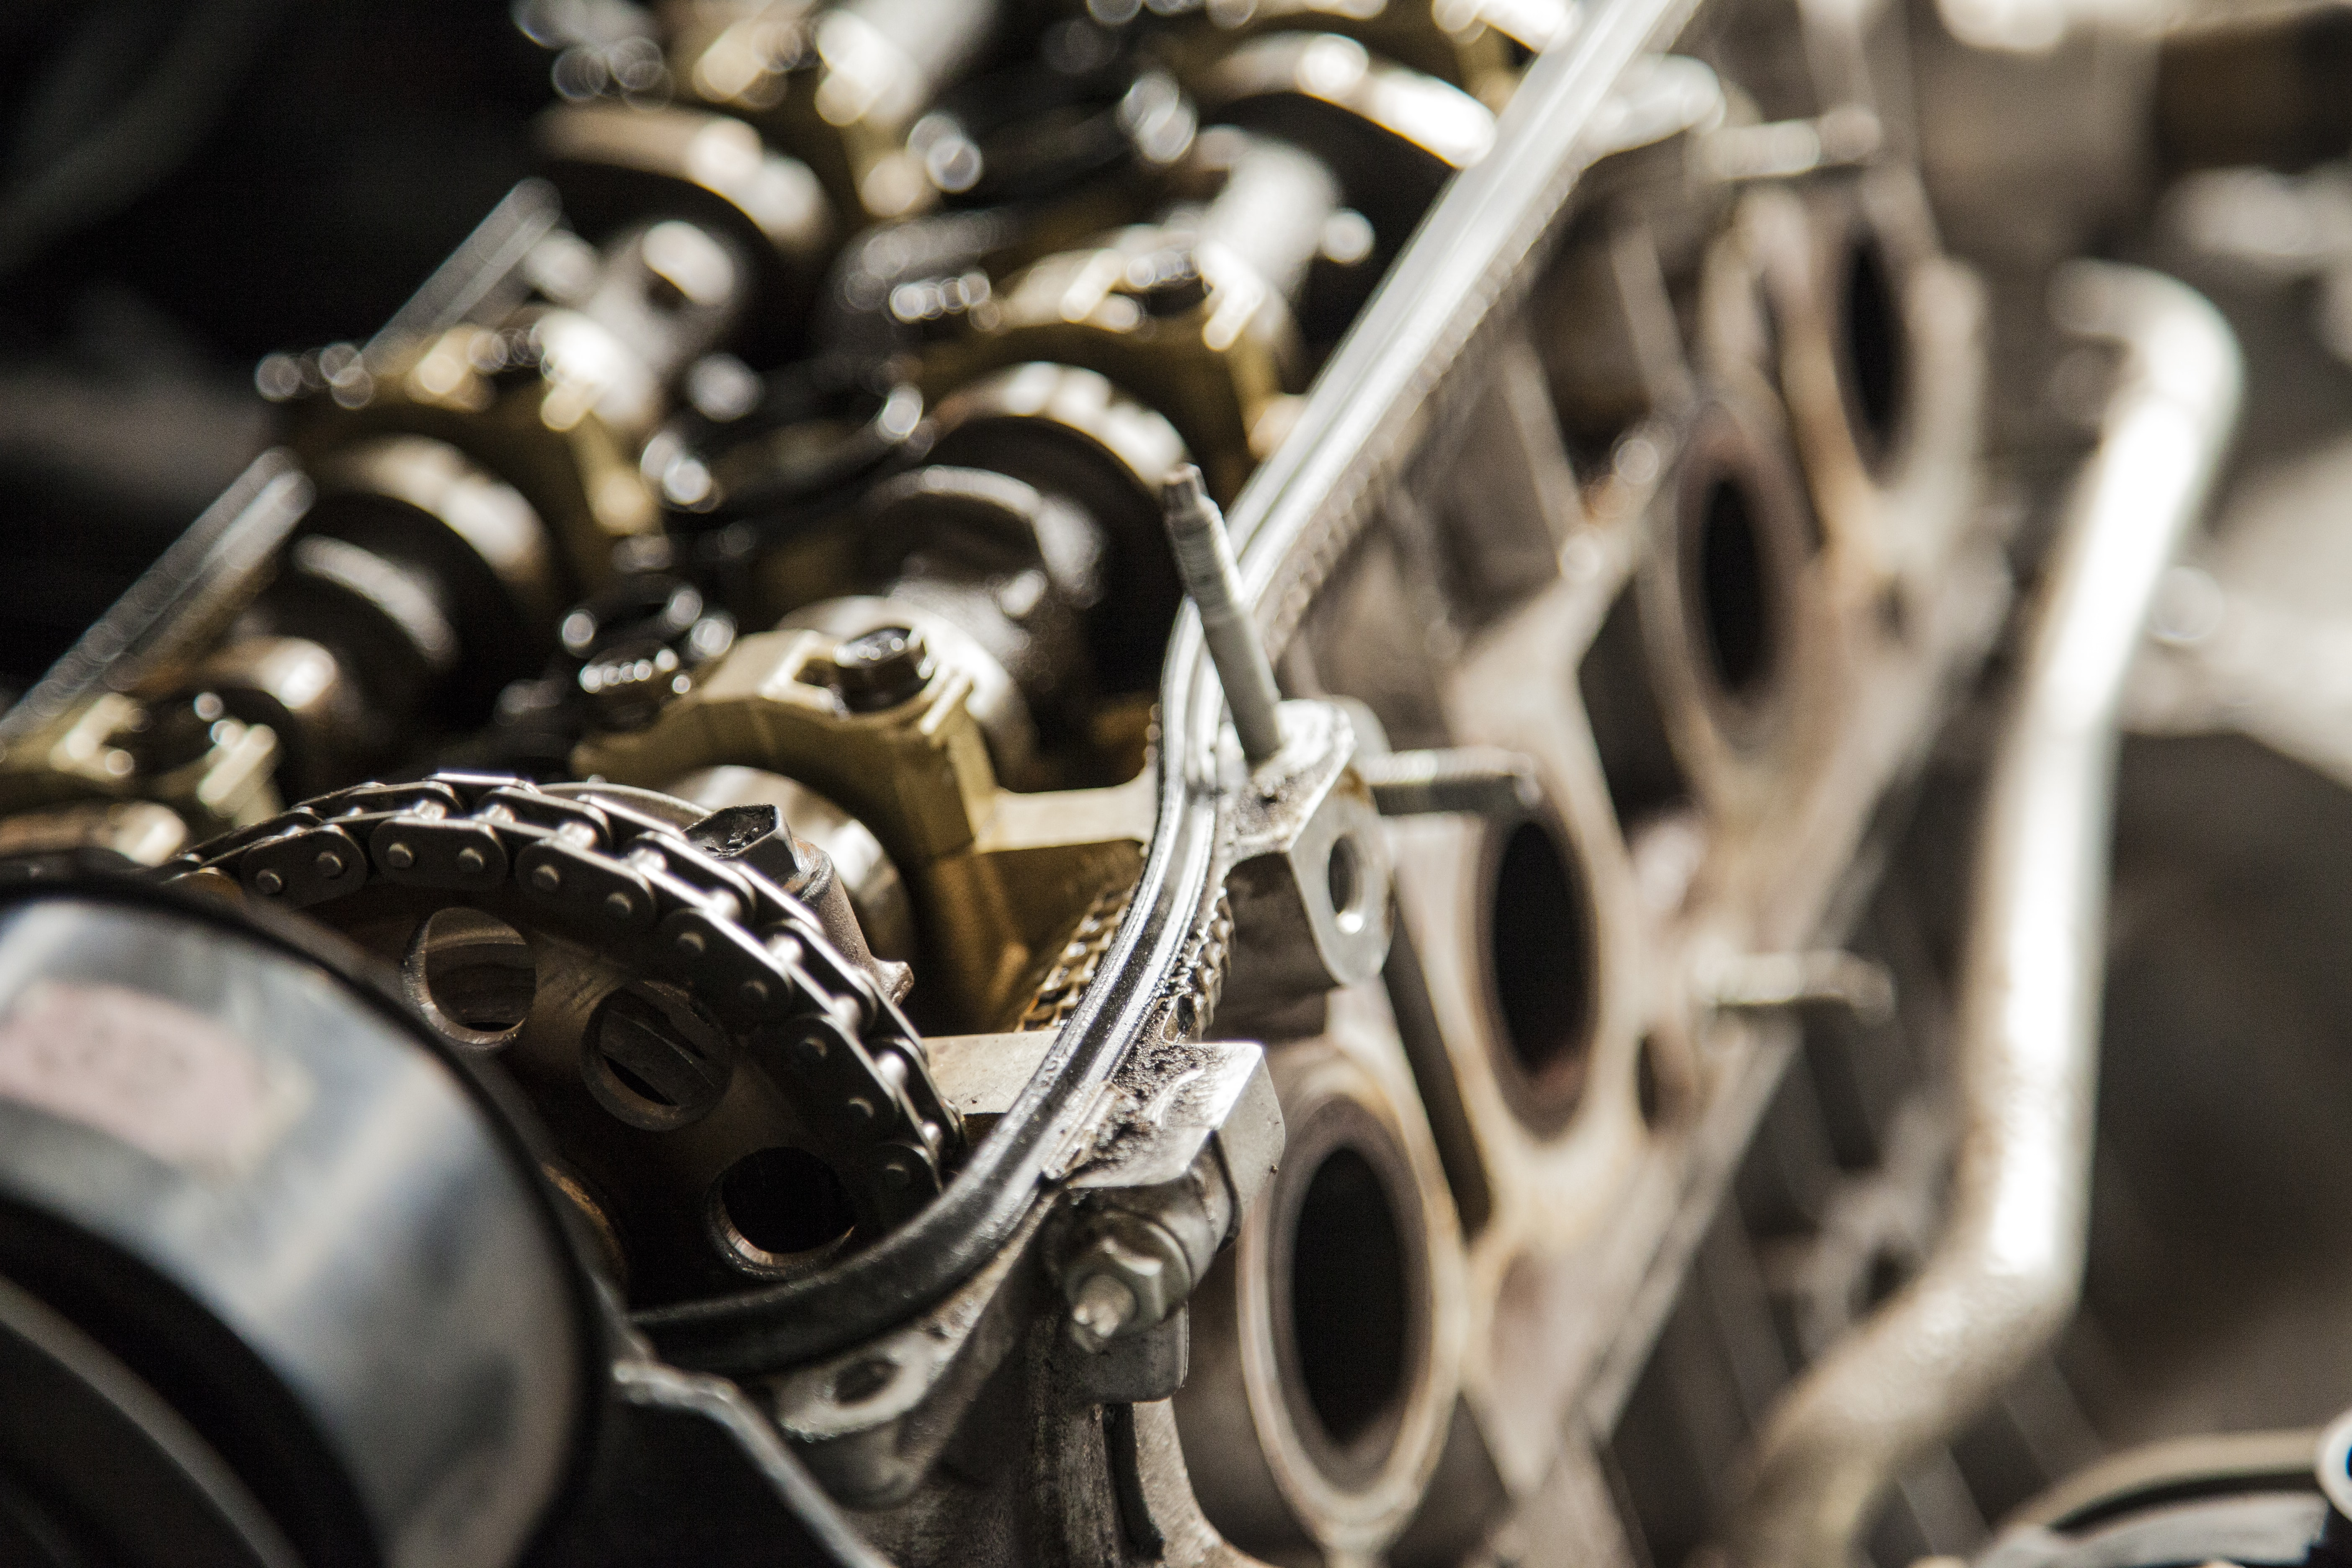 A vintage looking metal machine engine block with gears and cogs